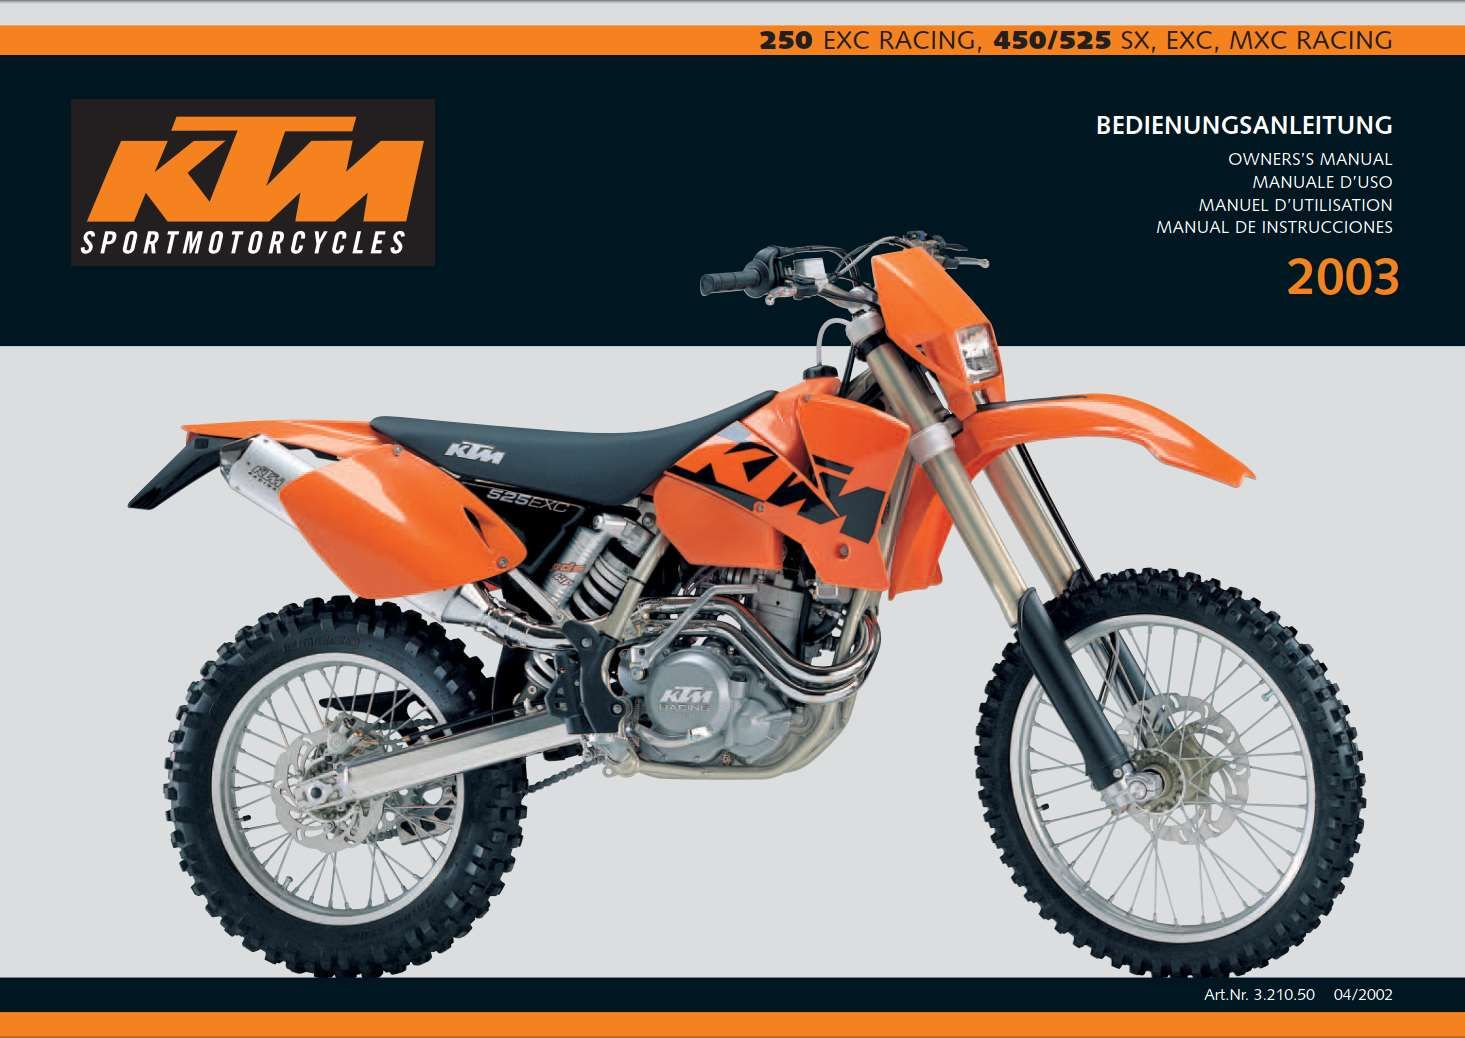 Ktm 250 Exc 450 Exc 525 Exc 2003 Owner S Manual Has Been Published On Procarmanuals Com Https Procarmanuals Com Ktm 250 Exc 450 Exc Ktm 250 Exc Ktm 250 Ktm